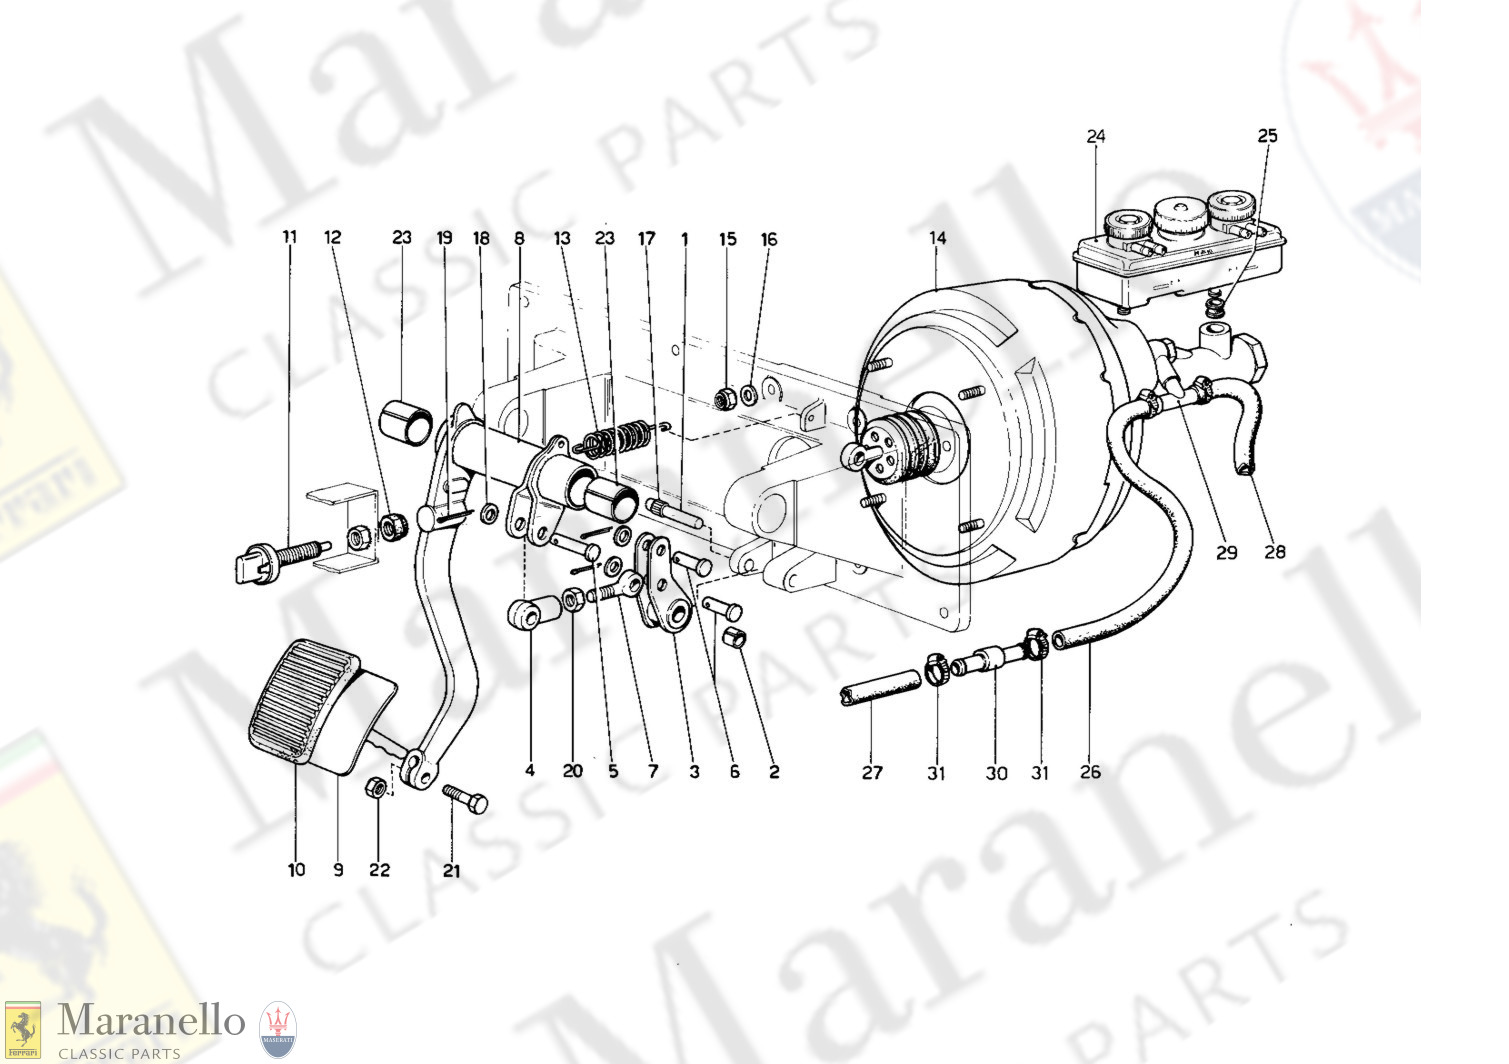 056 - Brakes Hydraulc Drive (400 Gt - Variants For RHD Version)